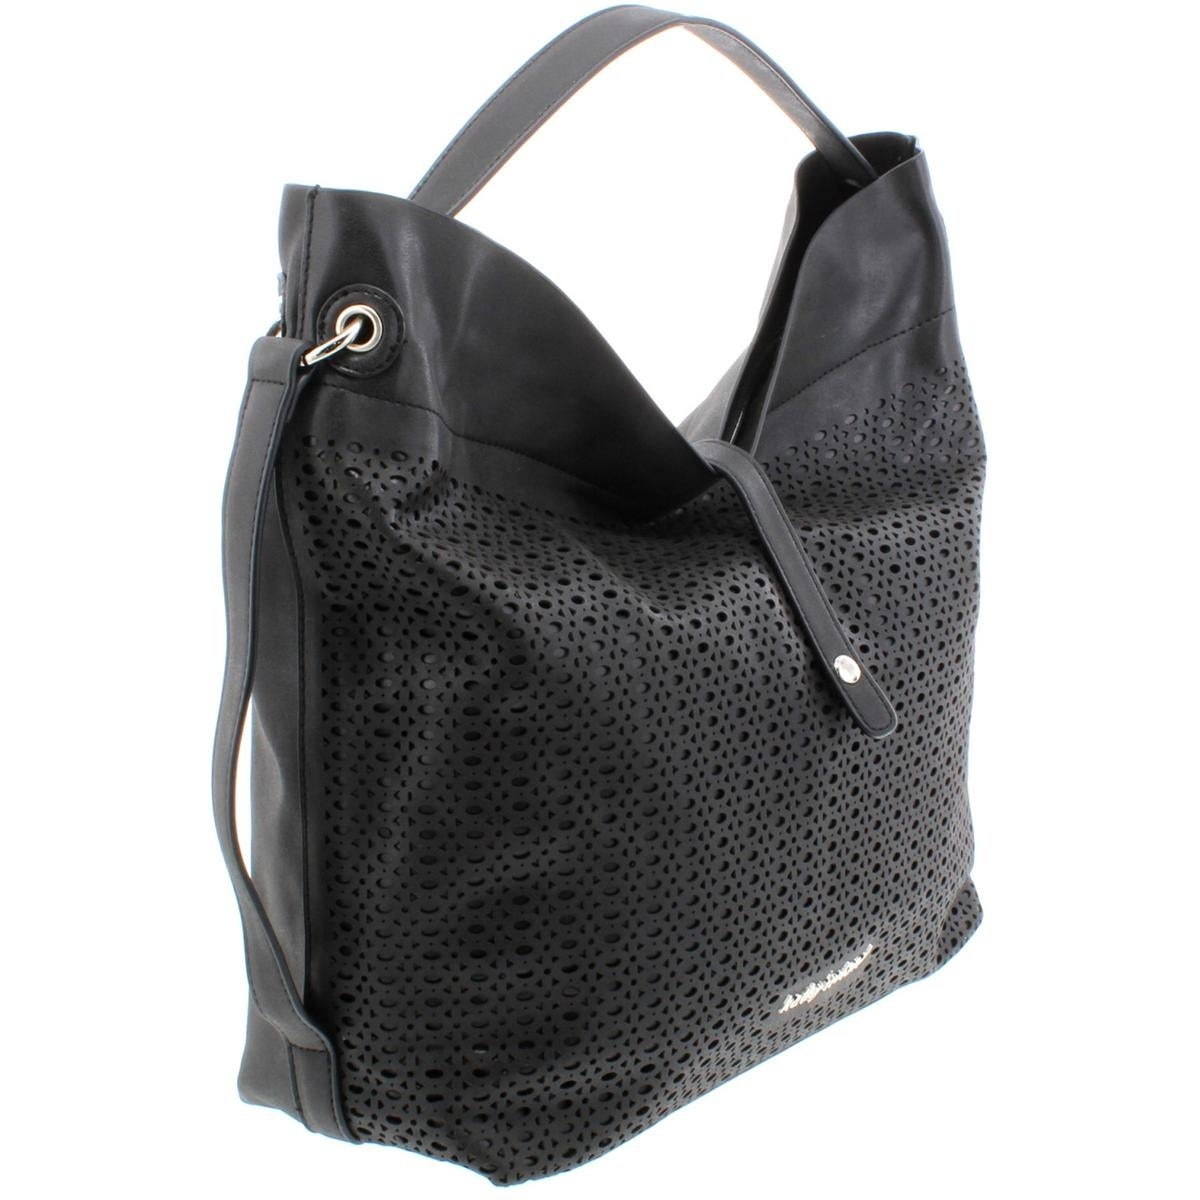 78353bc9c606 Shop Kathy Ireland Womens Hobo Handbag Faux Leather Laser Cut - On Sale -  Free Shipping On Orders Over  45 - Overstock - 19296442